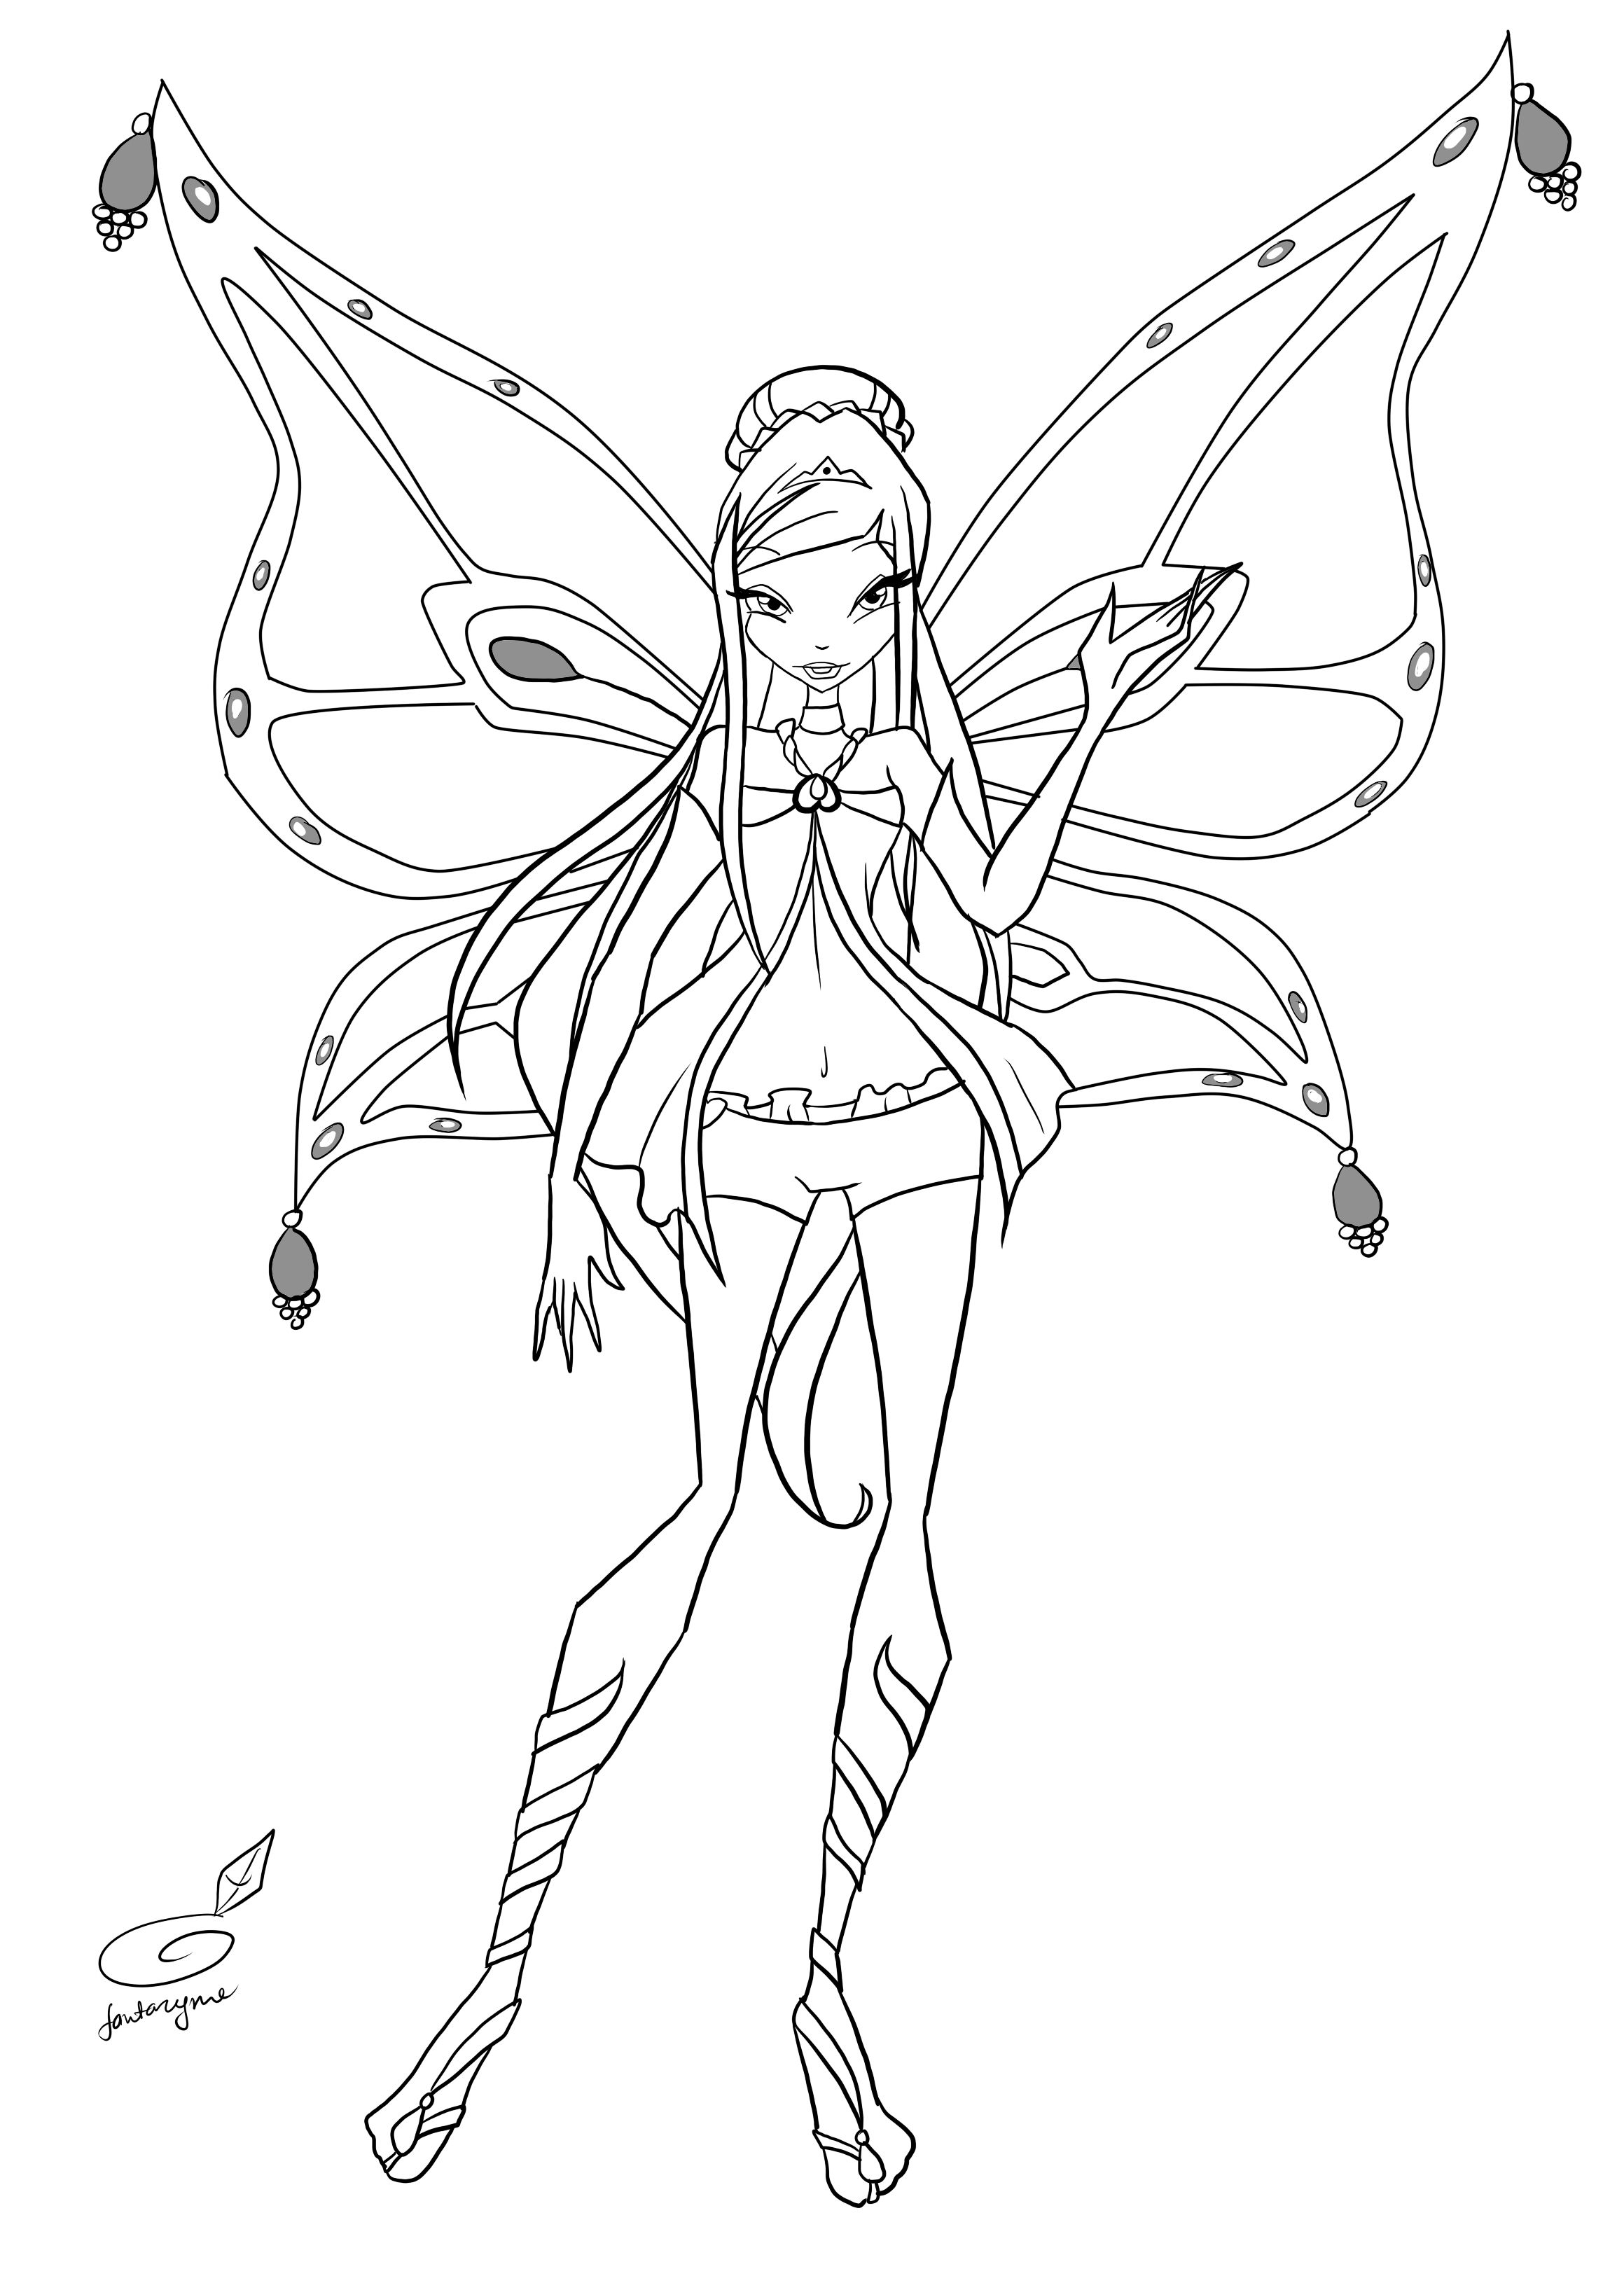 winx club flora coloring page - Google Search | Anime Art ...